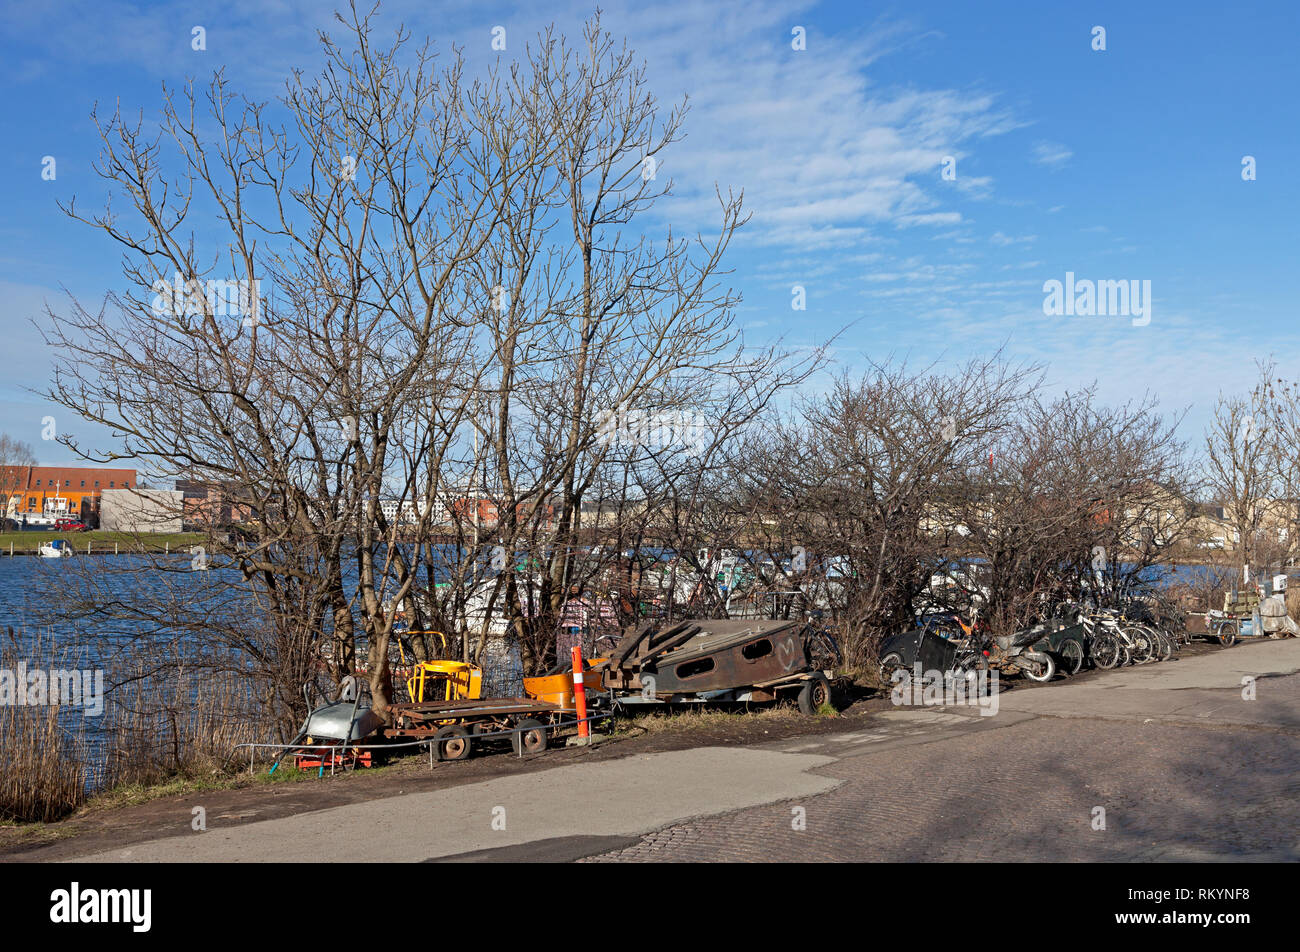 Fredens Havn, Harbour of Peace behind the freetown Christiania in Copenhagen. This maritime community is now up for removal according to authorities. - Stock Image